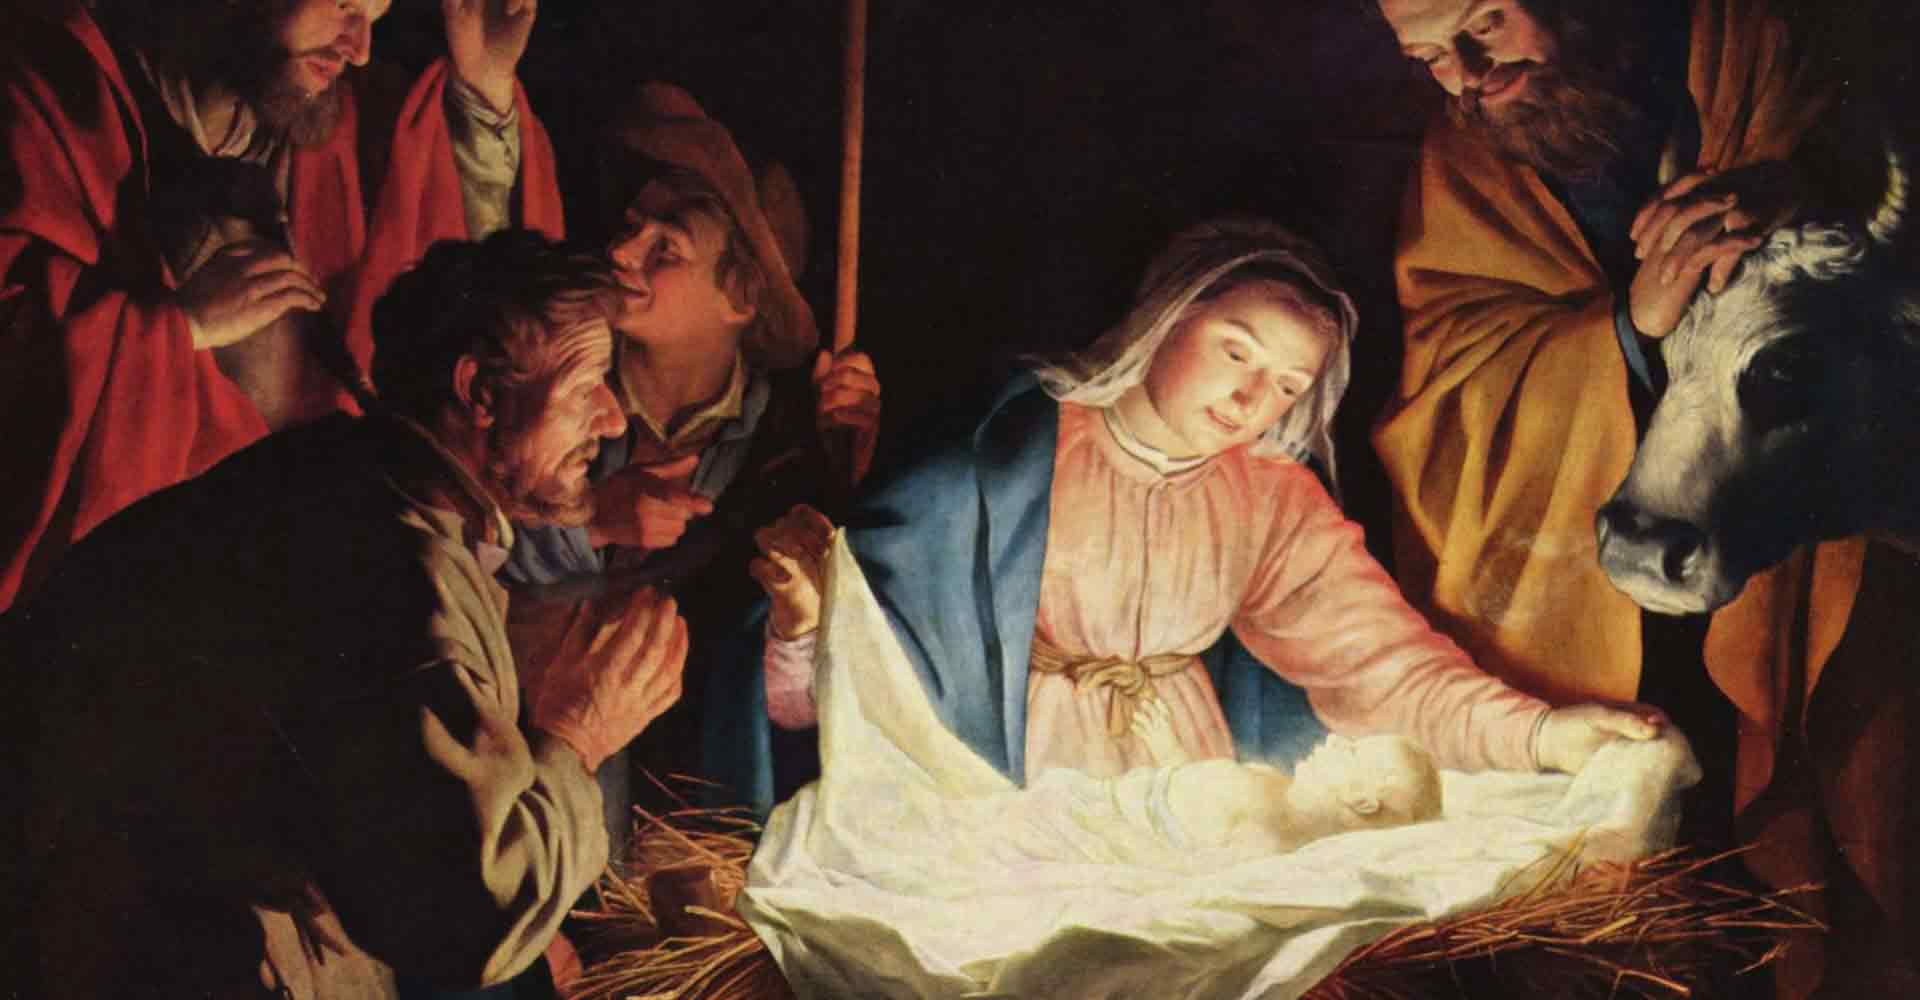 Nativity, Birth of Christ, Incarnation